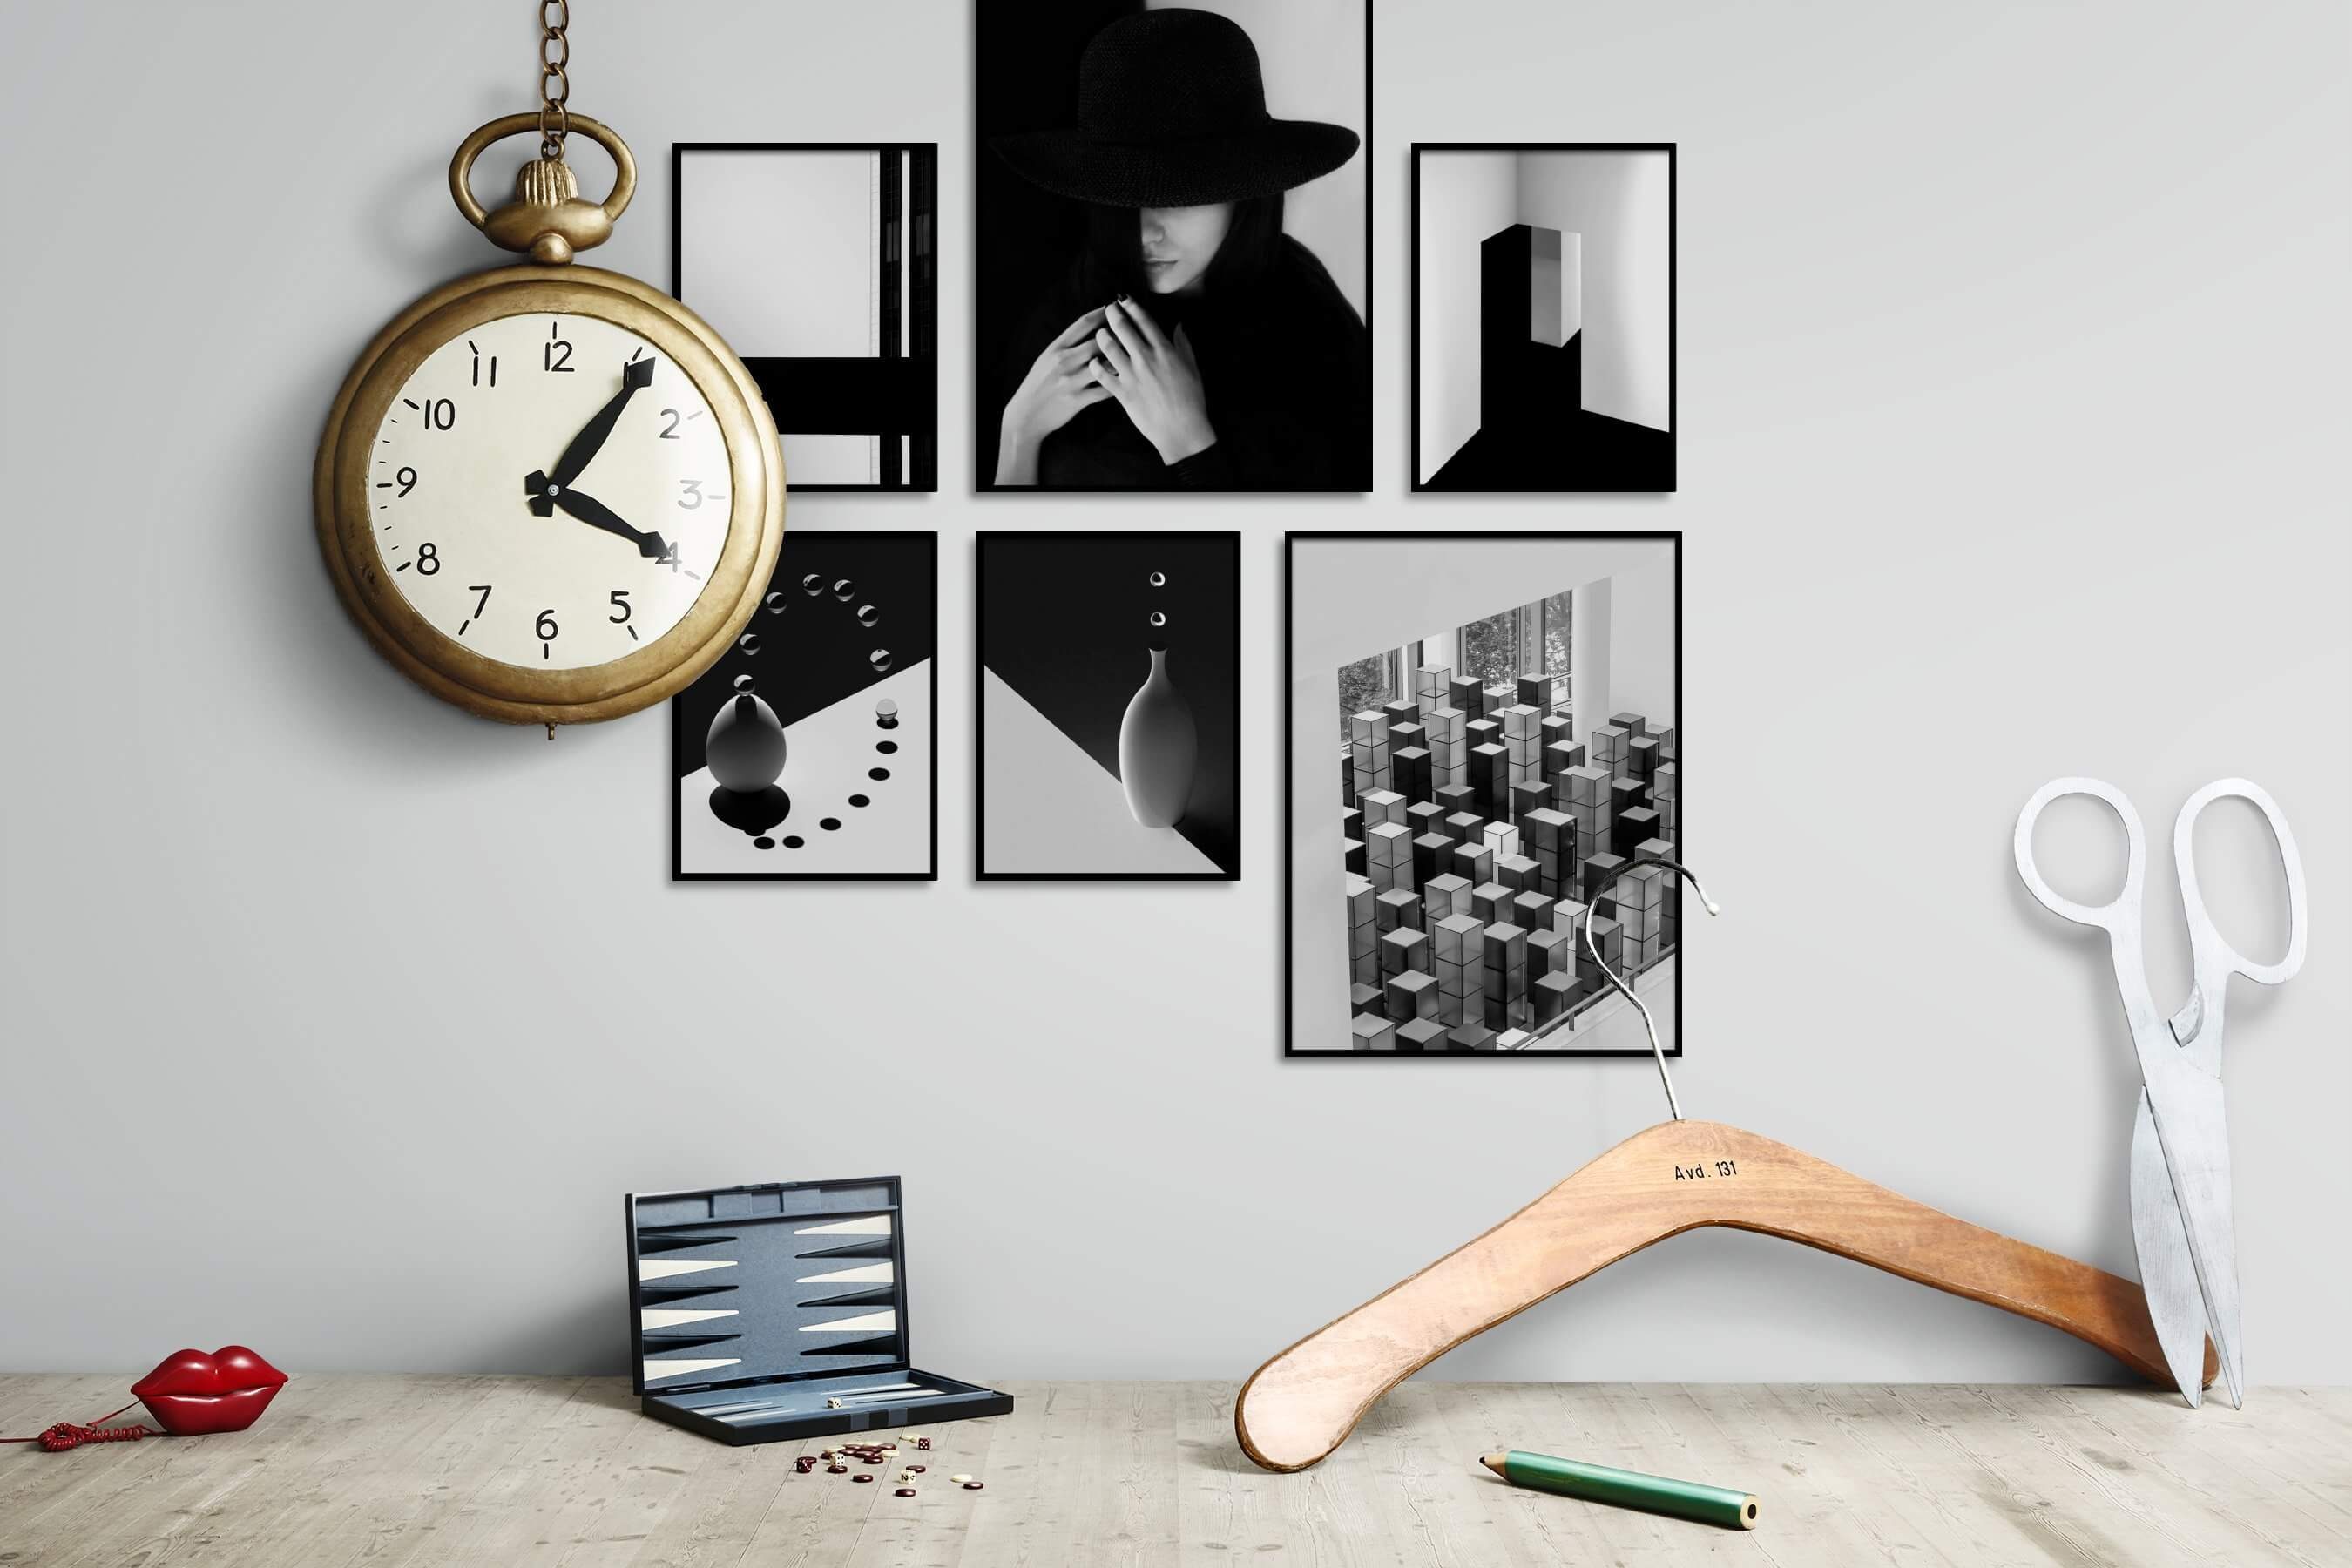 Gallery wall idea with six framed pictures arranged on a wall depicting Black & White, For the Minimalist, City Life, Fashion & Beauty, For the Moderate, and Dark Tones